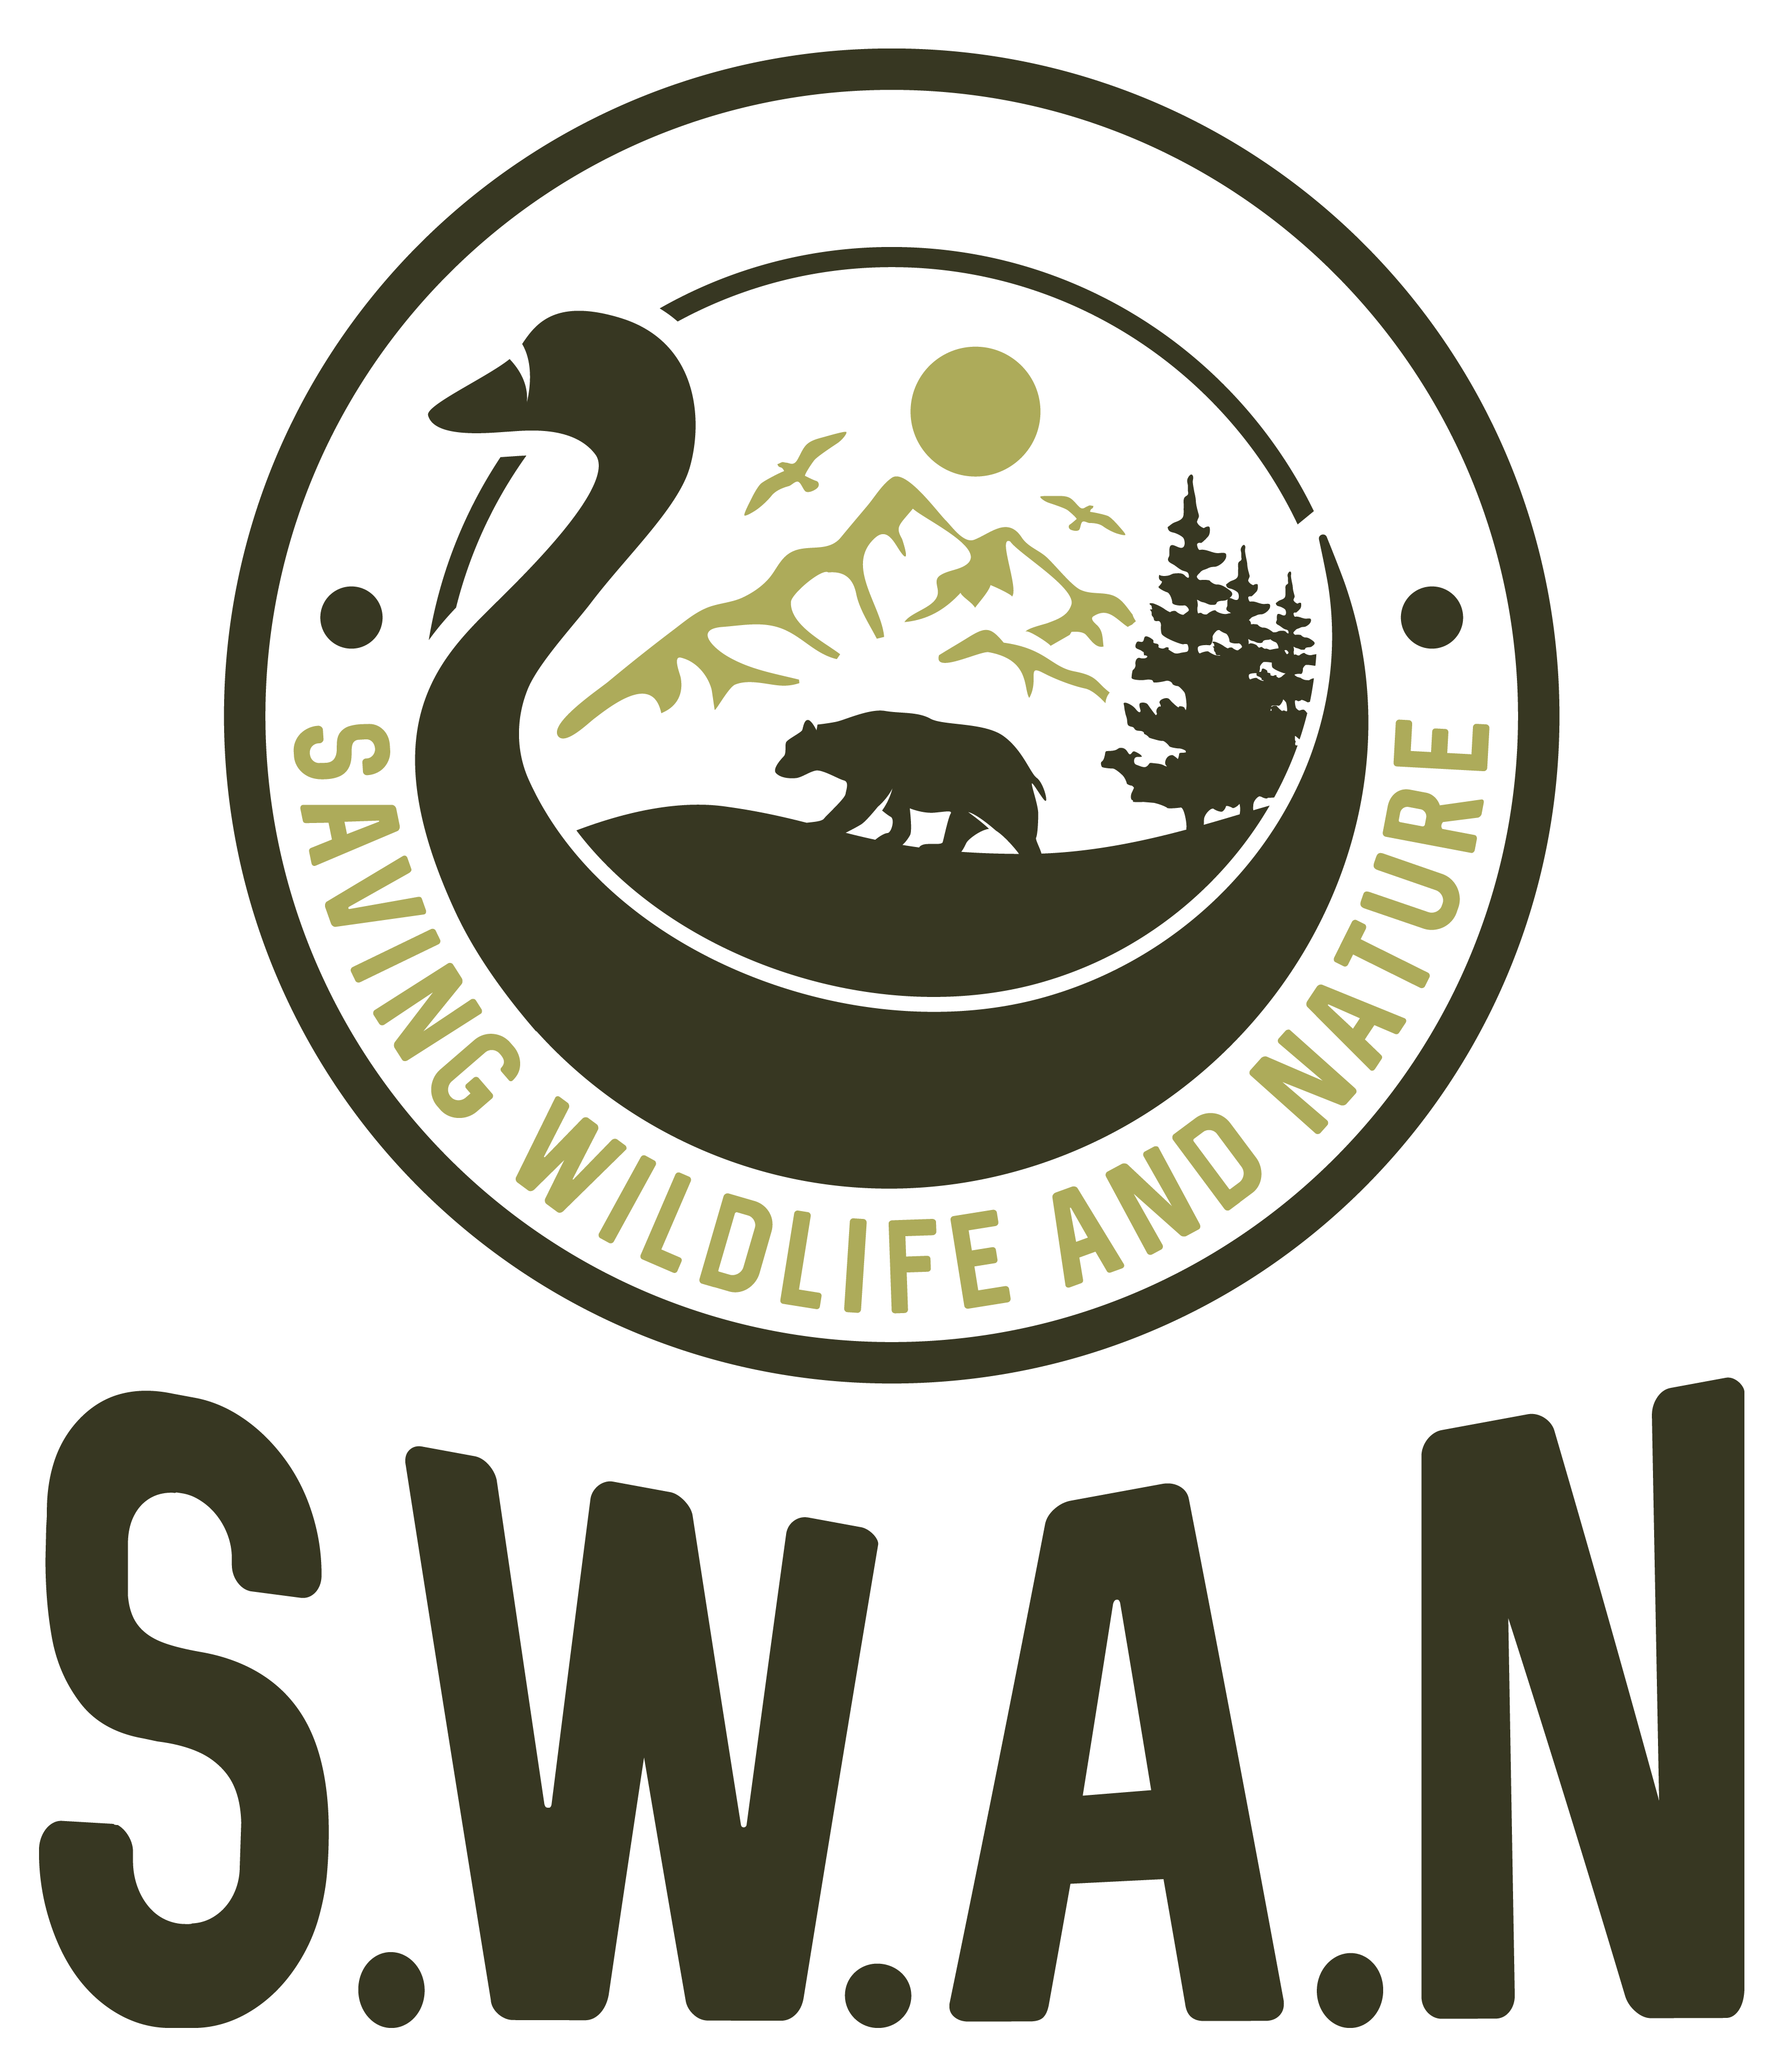 S.W.A.N Logo  (Saving Wildlife and Nature)